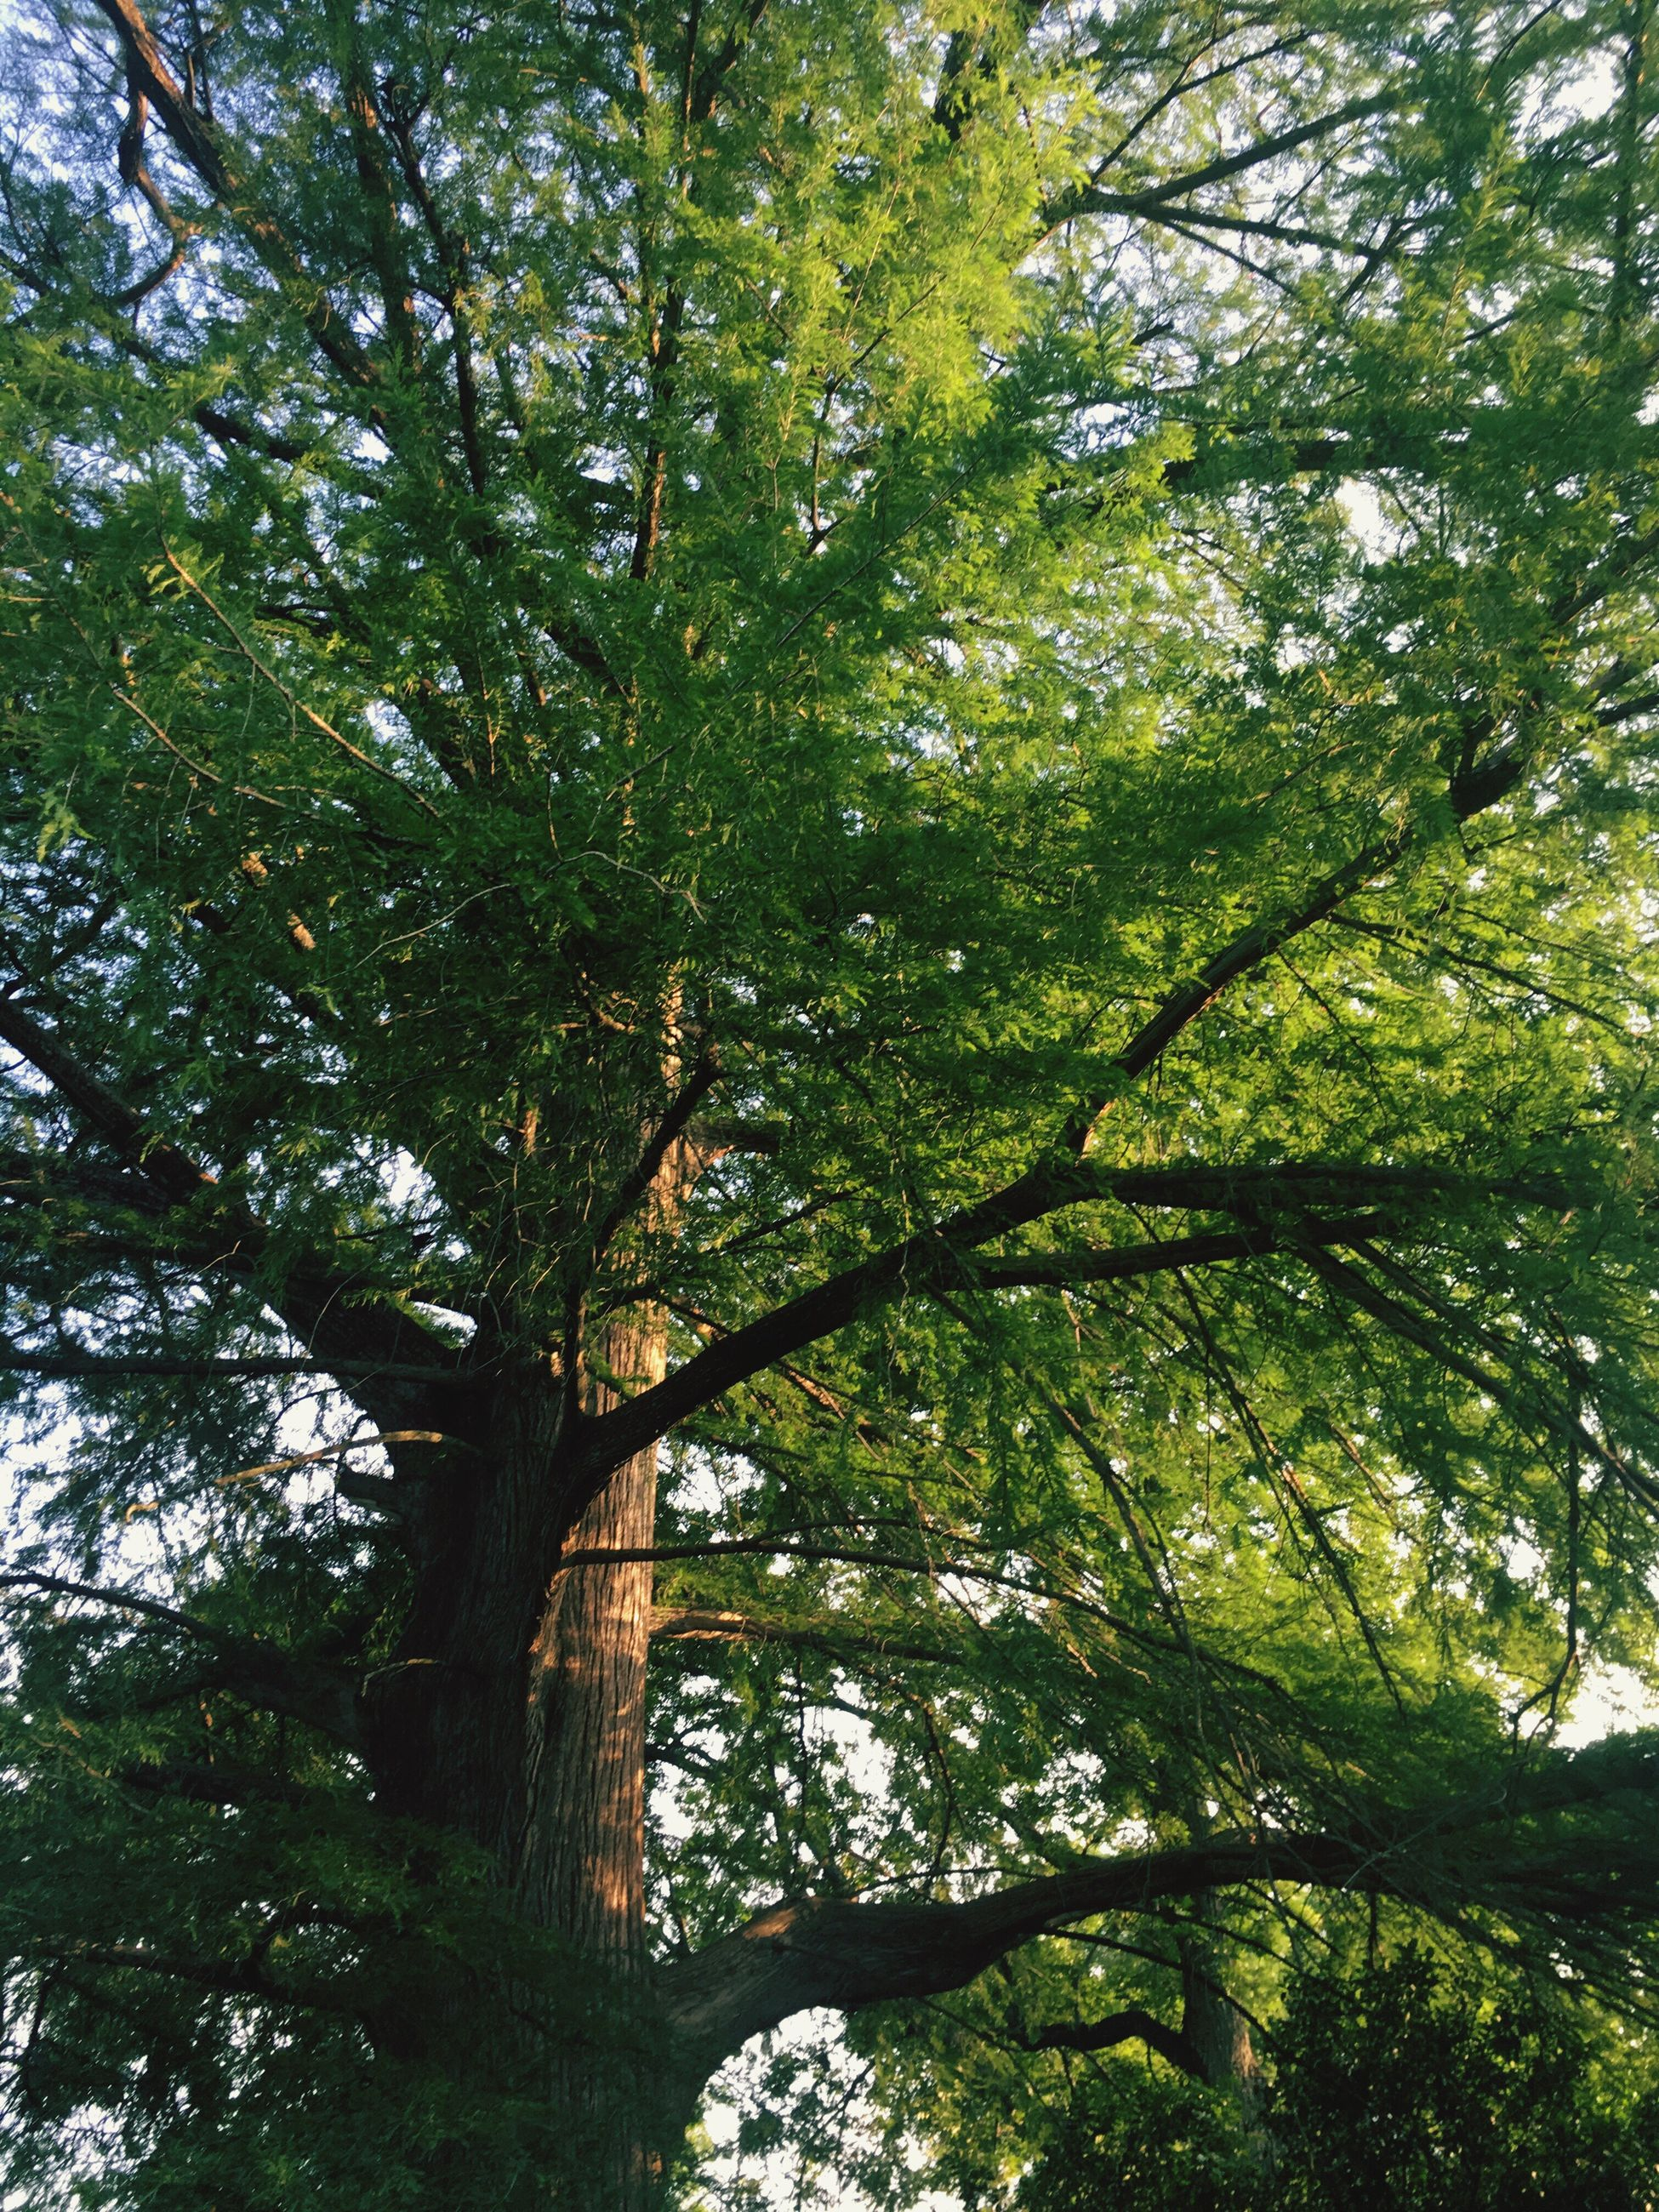 tree, growth, nature, low angle view, green color, beauty in nature, no people, outdoors, tranquility, day, sky, backgrounds, scenics